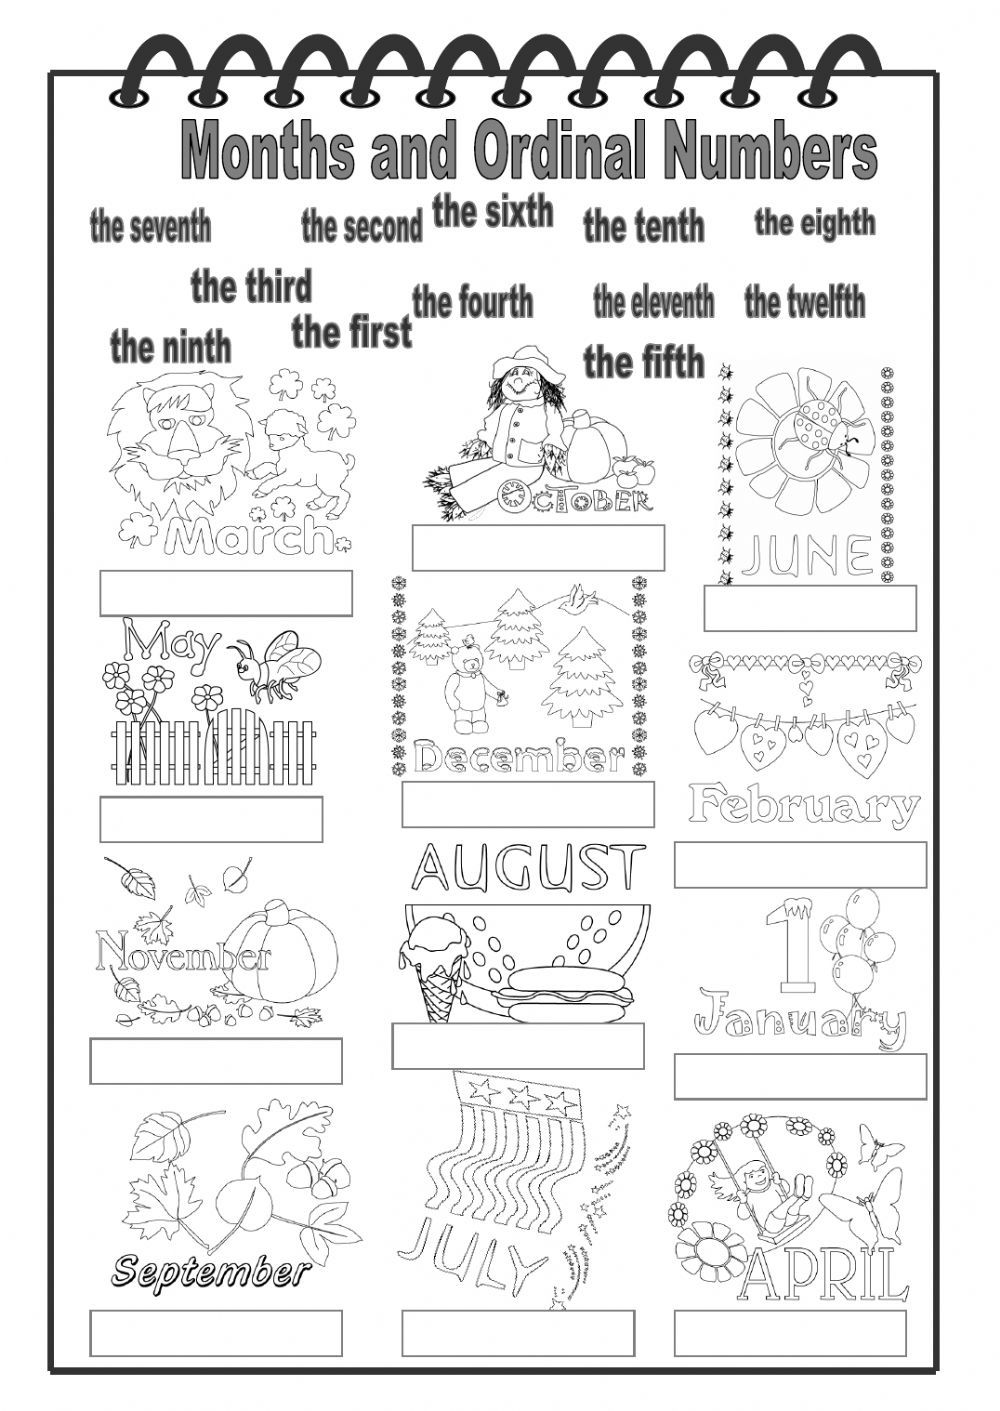 The months of the year interactive and downloadable